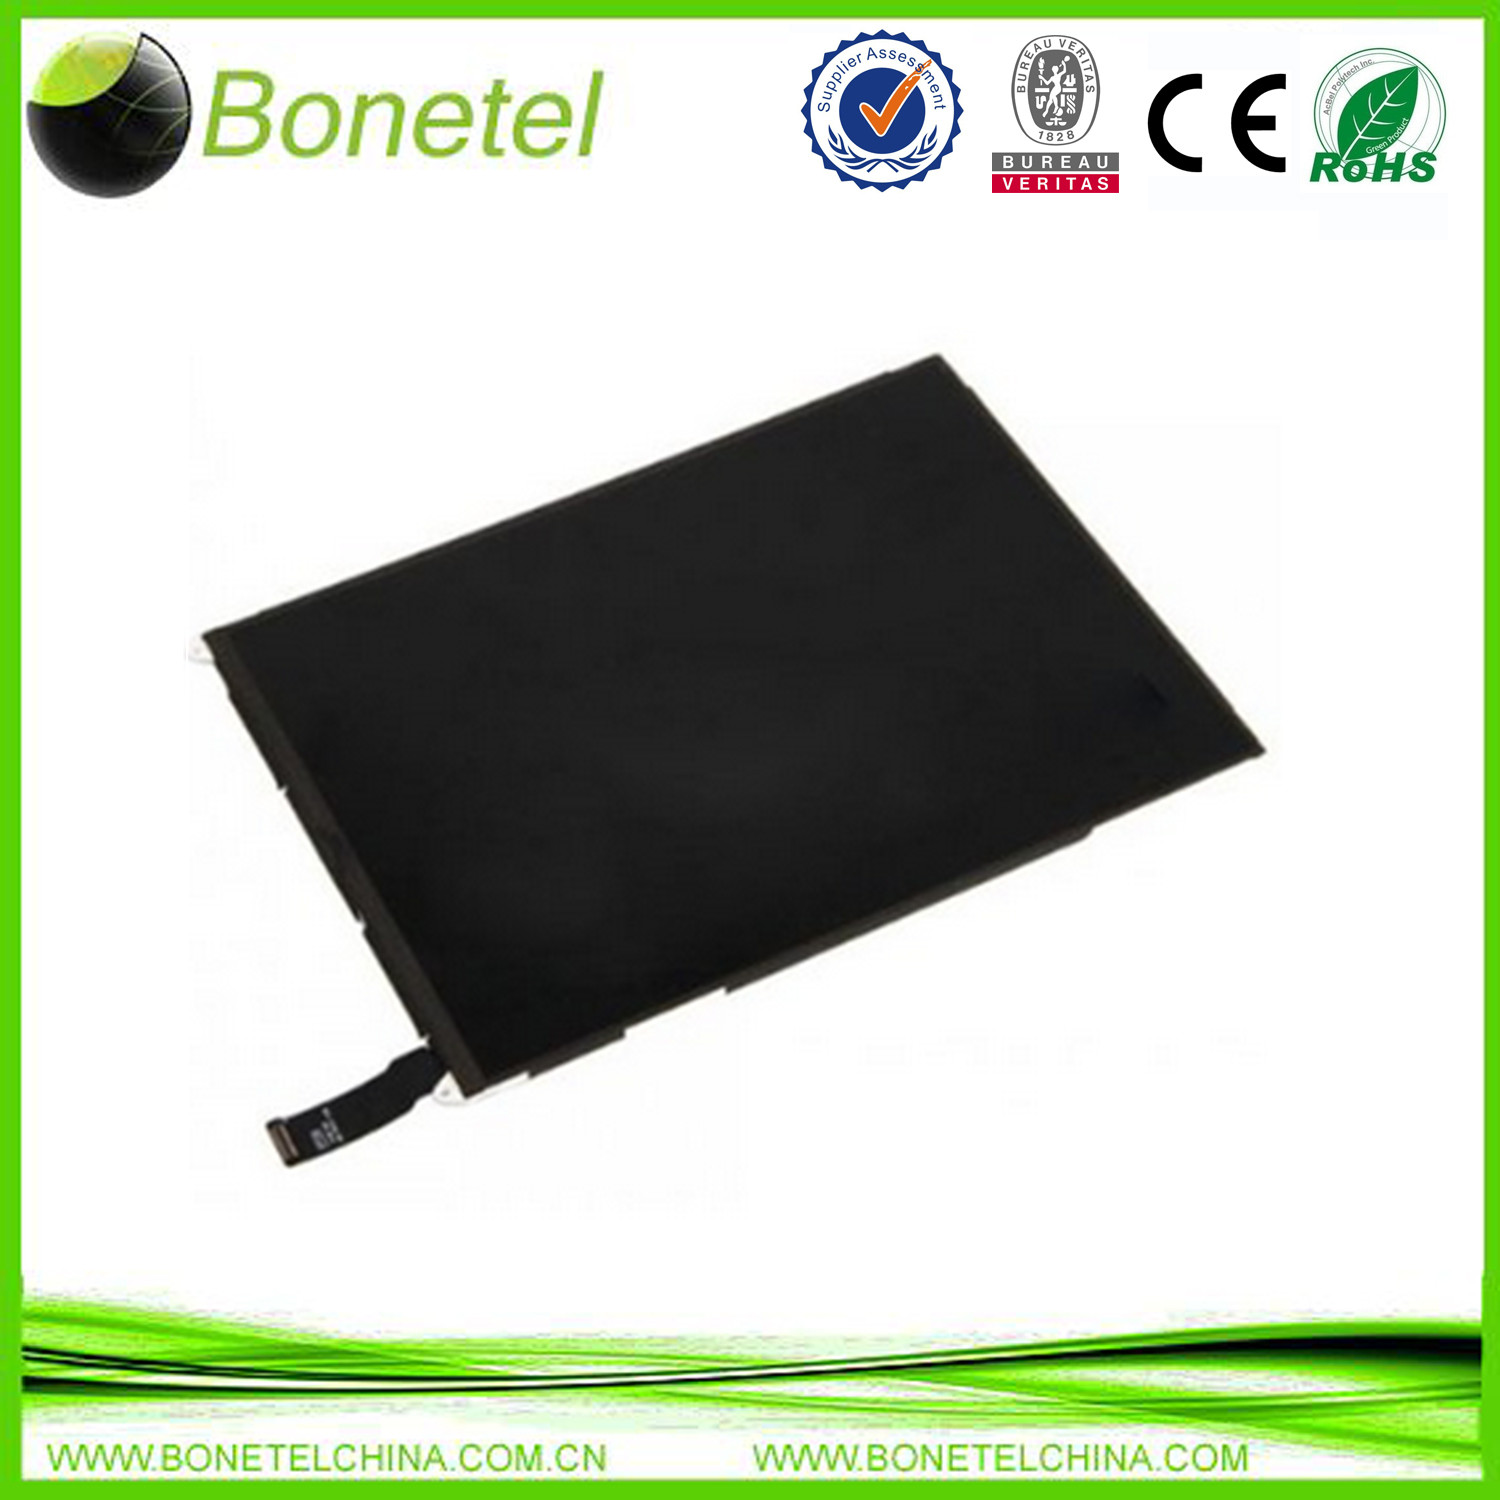 New LCD Display Screen Replacement for iPad Mini 1